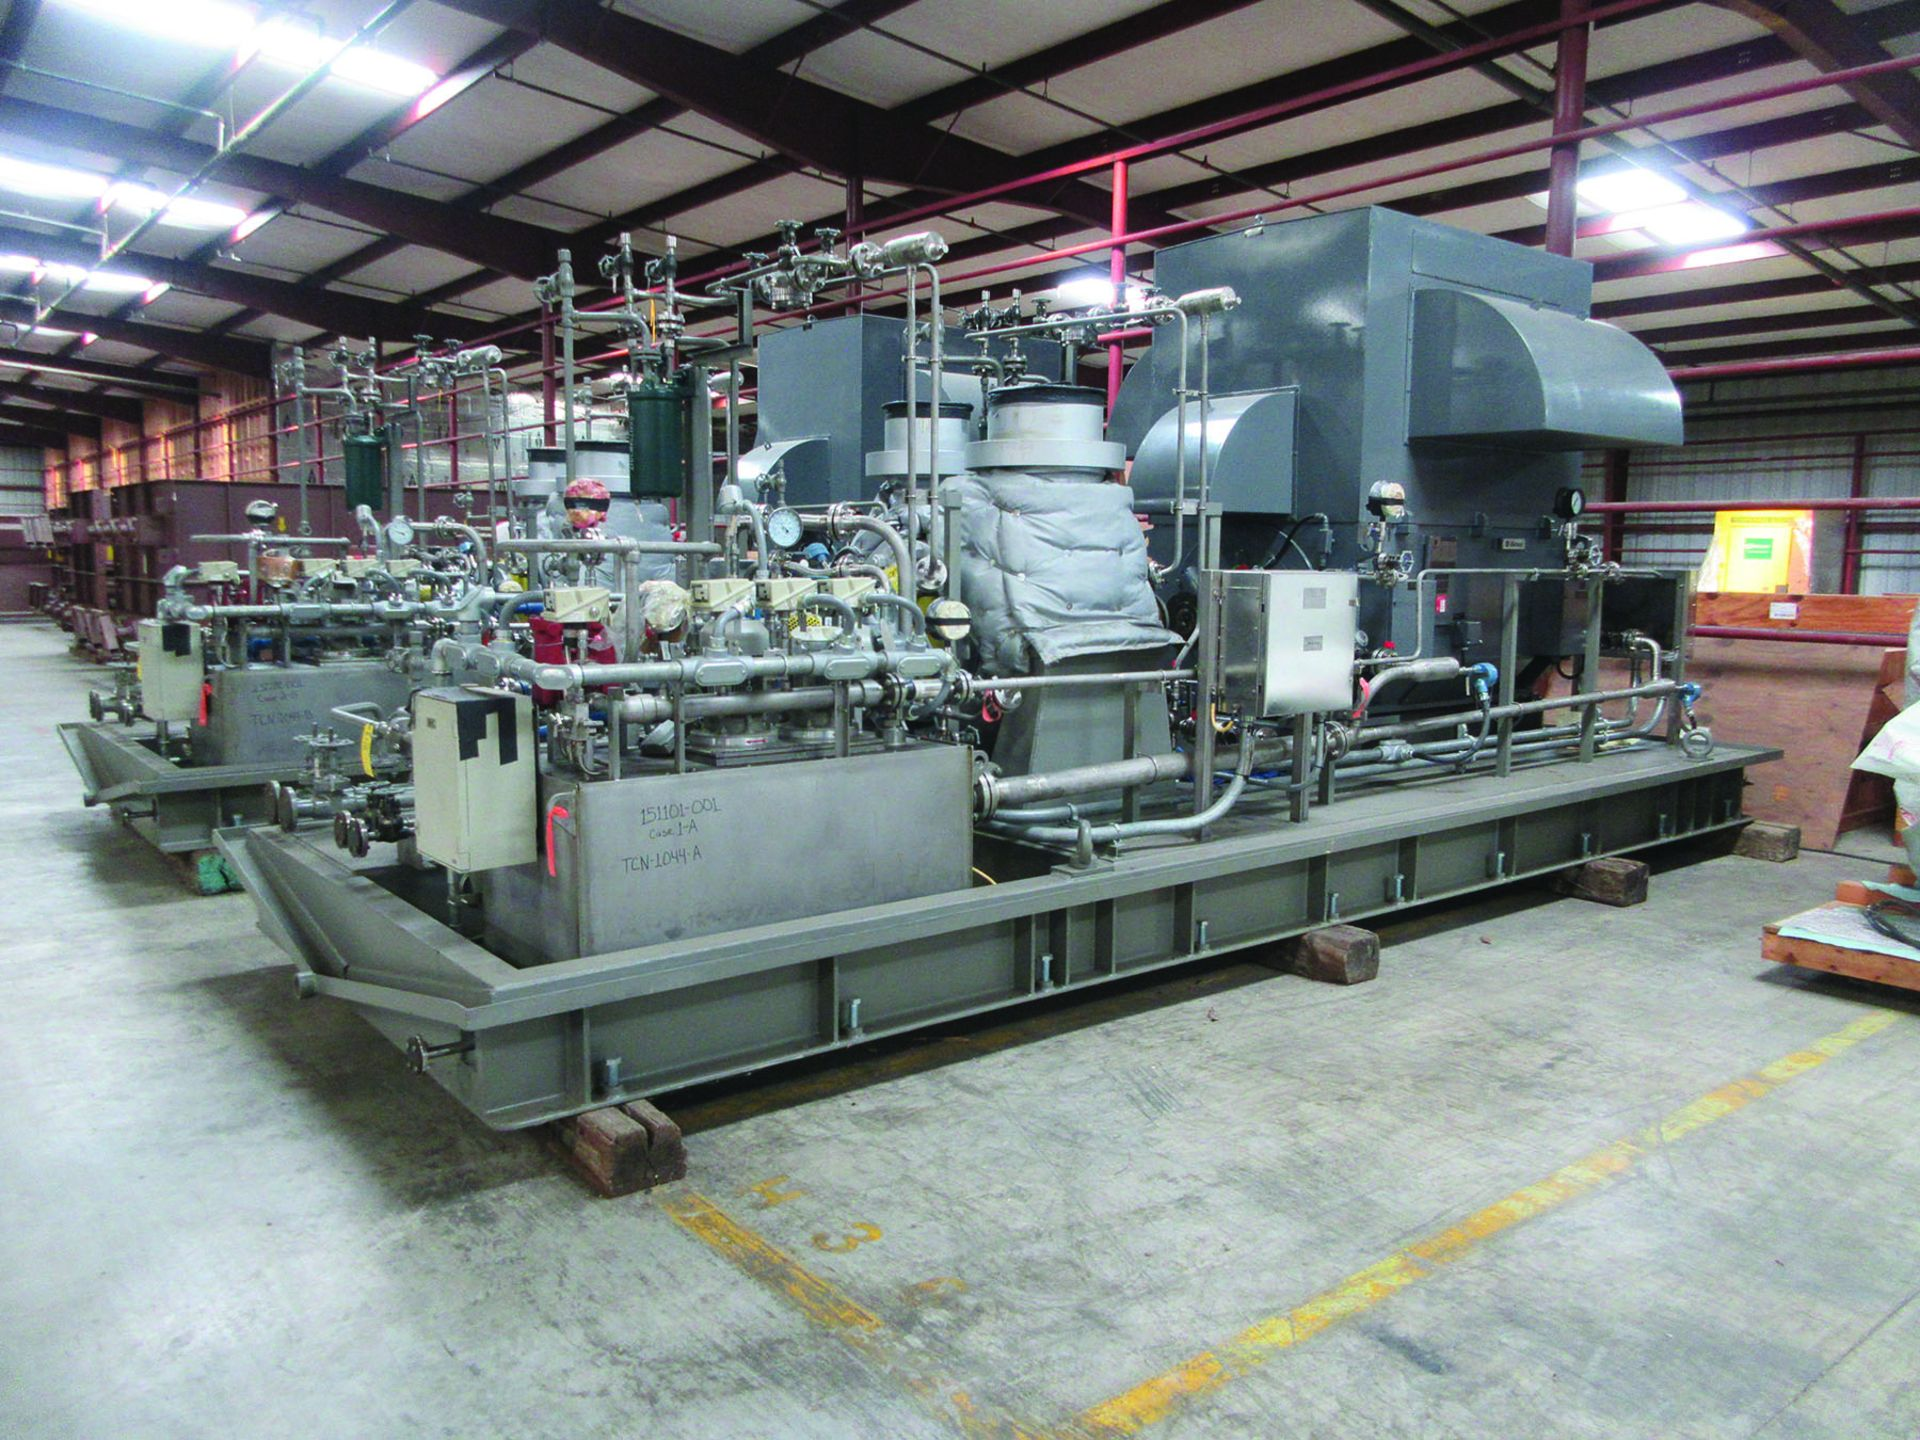 BOILER FEEDWATER BOOSTER PUMP SLED, GE 3,000 HP INDUCTION MOTOR 3585 RPM, 6600 VOLTS, 8313S FRAME, - Image 2 of 13